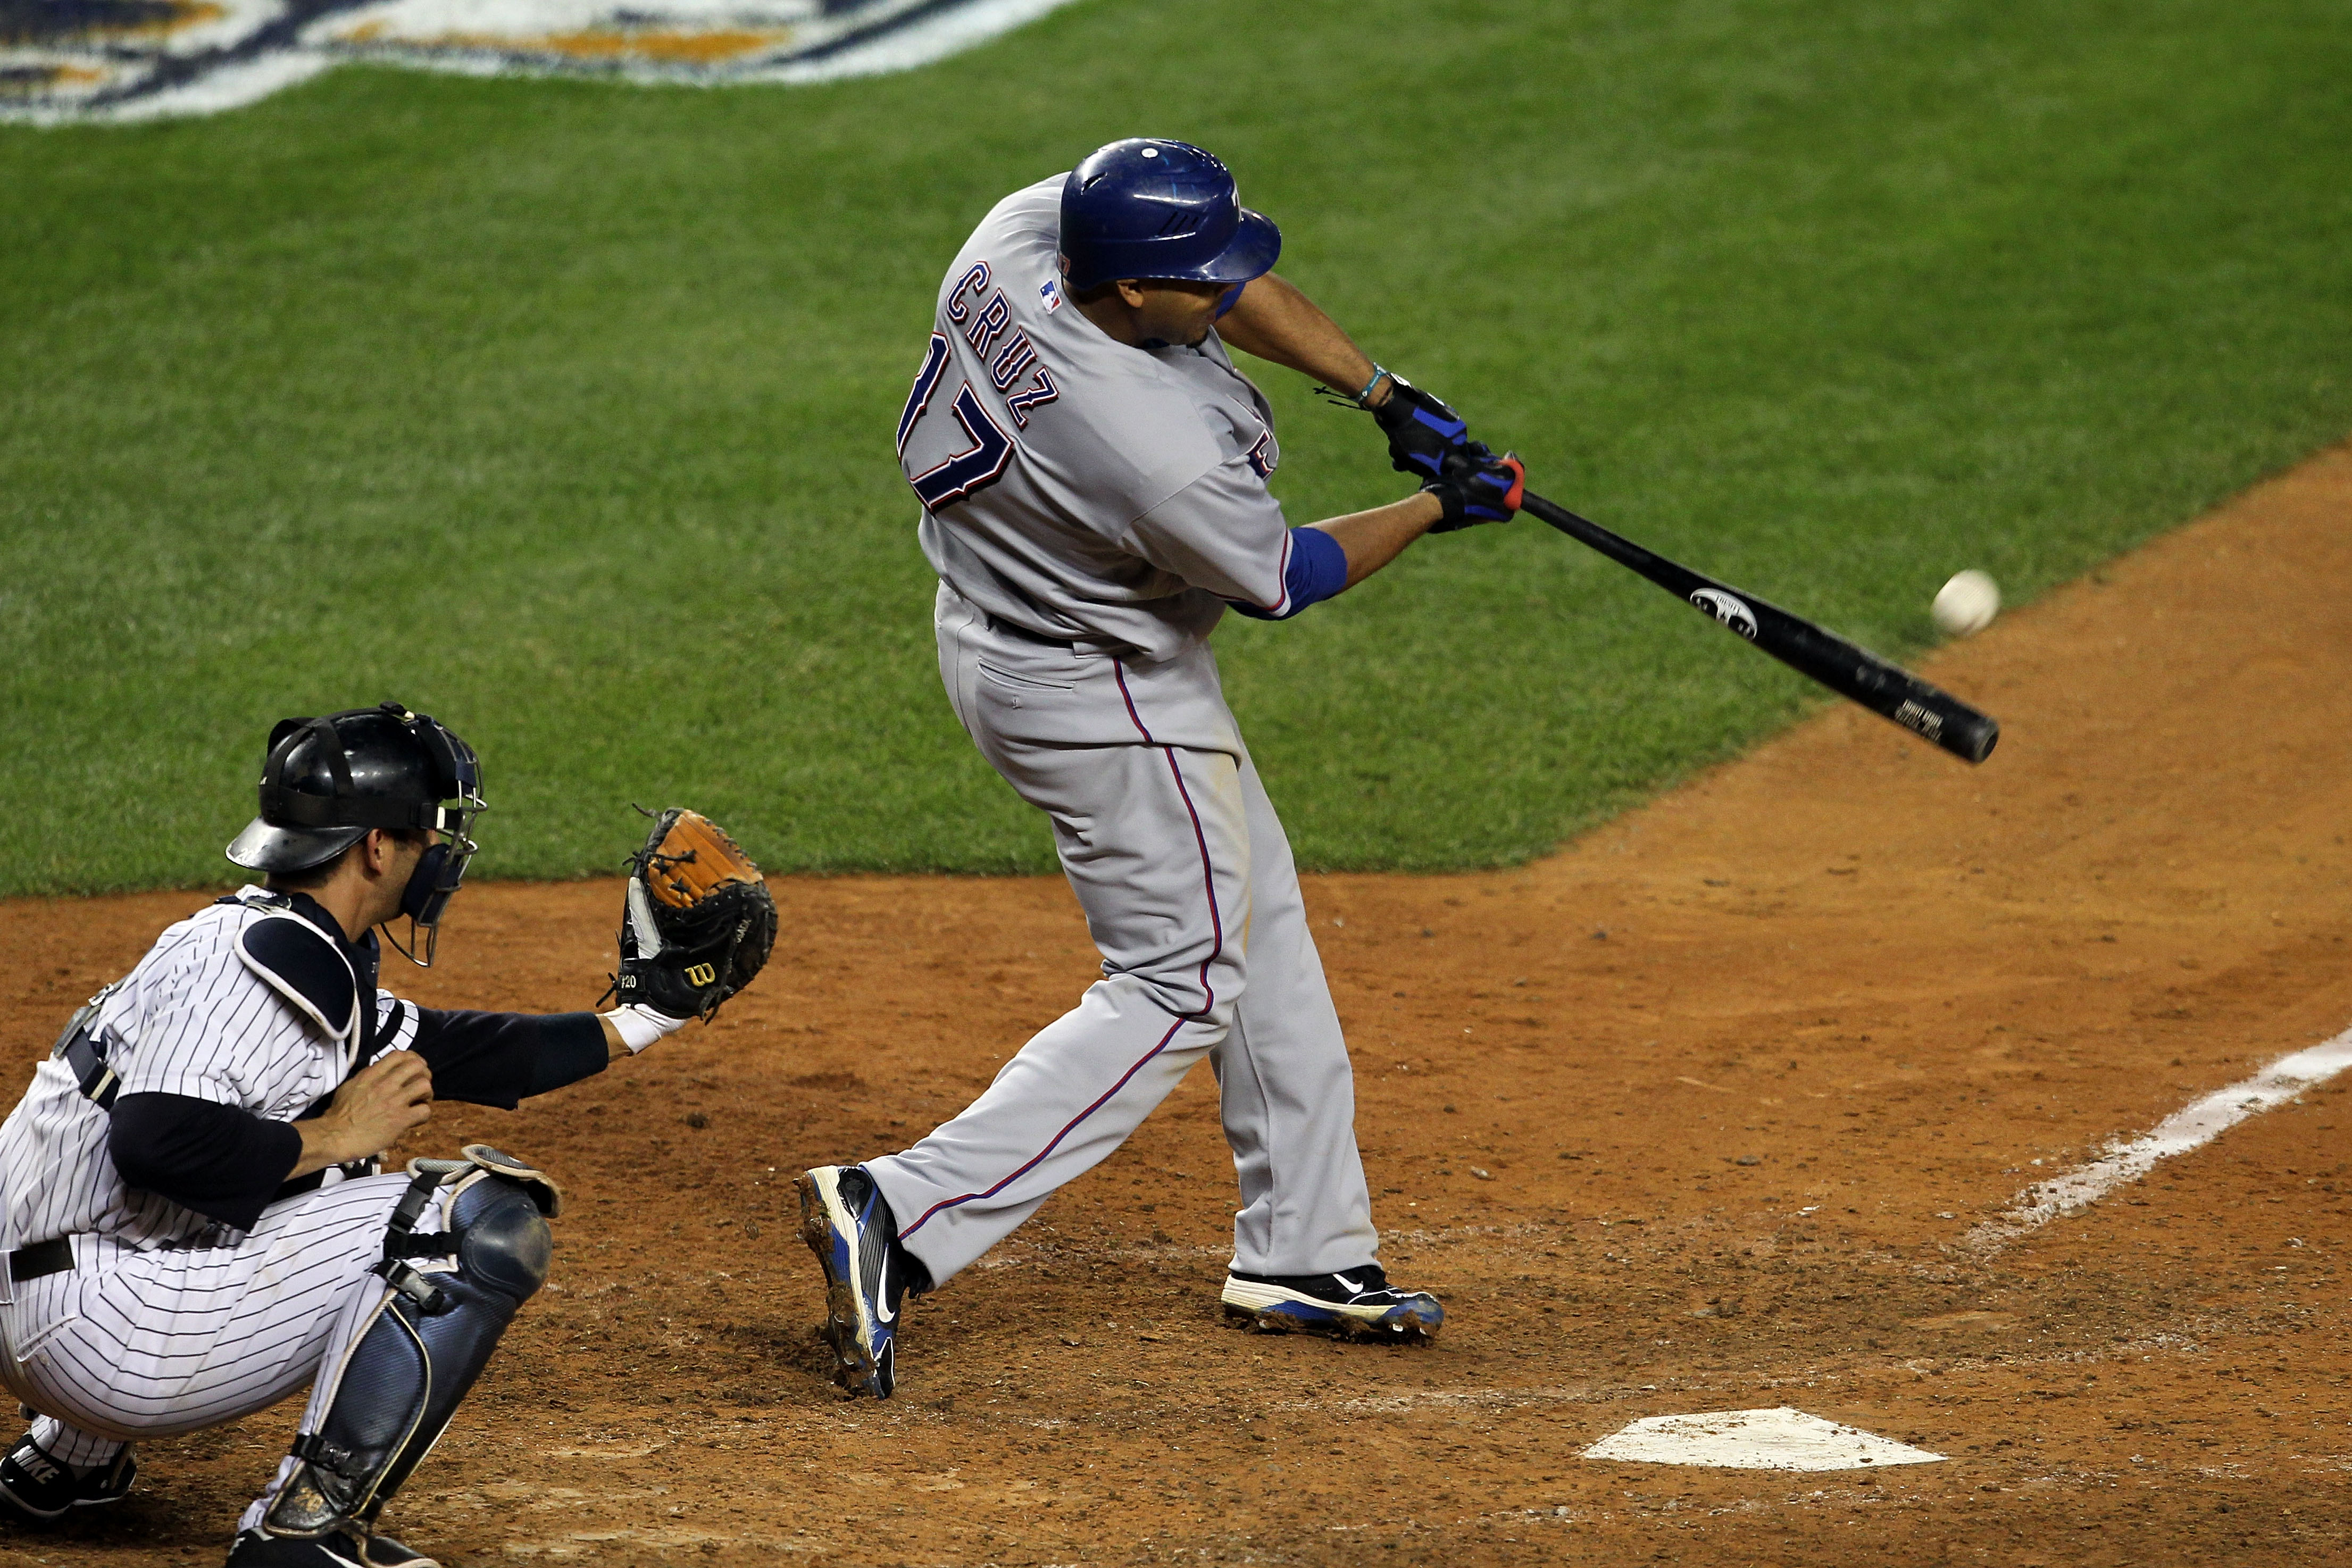 NEW YORK - OCTOBER 19:  Nelson Cruz #17 of the Texas Rangers hits a 2-run home run in the bottom of the ninth inning against the New York Yankees  in Game Four of the ALCS during the 2010 MLB Playoffs at Yankee Stadium on October 19, 2010 in the Bronx bor